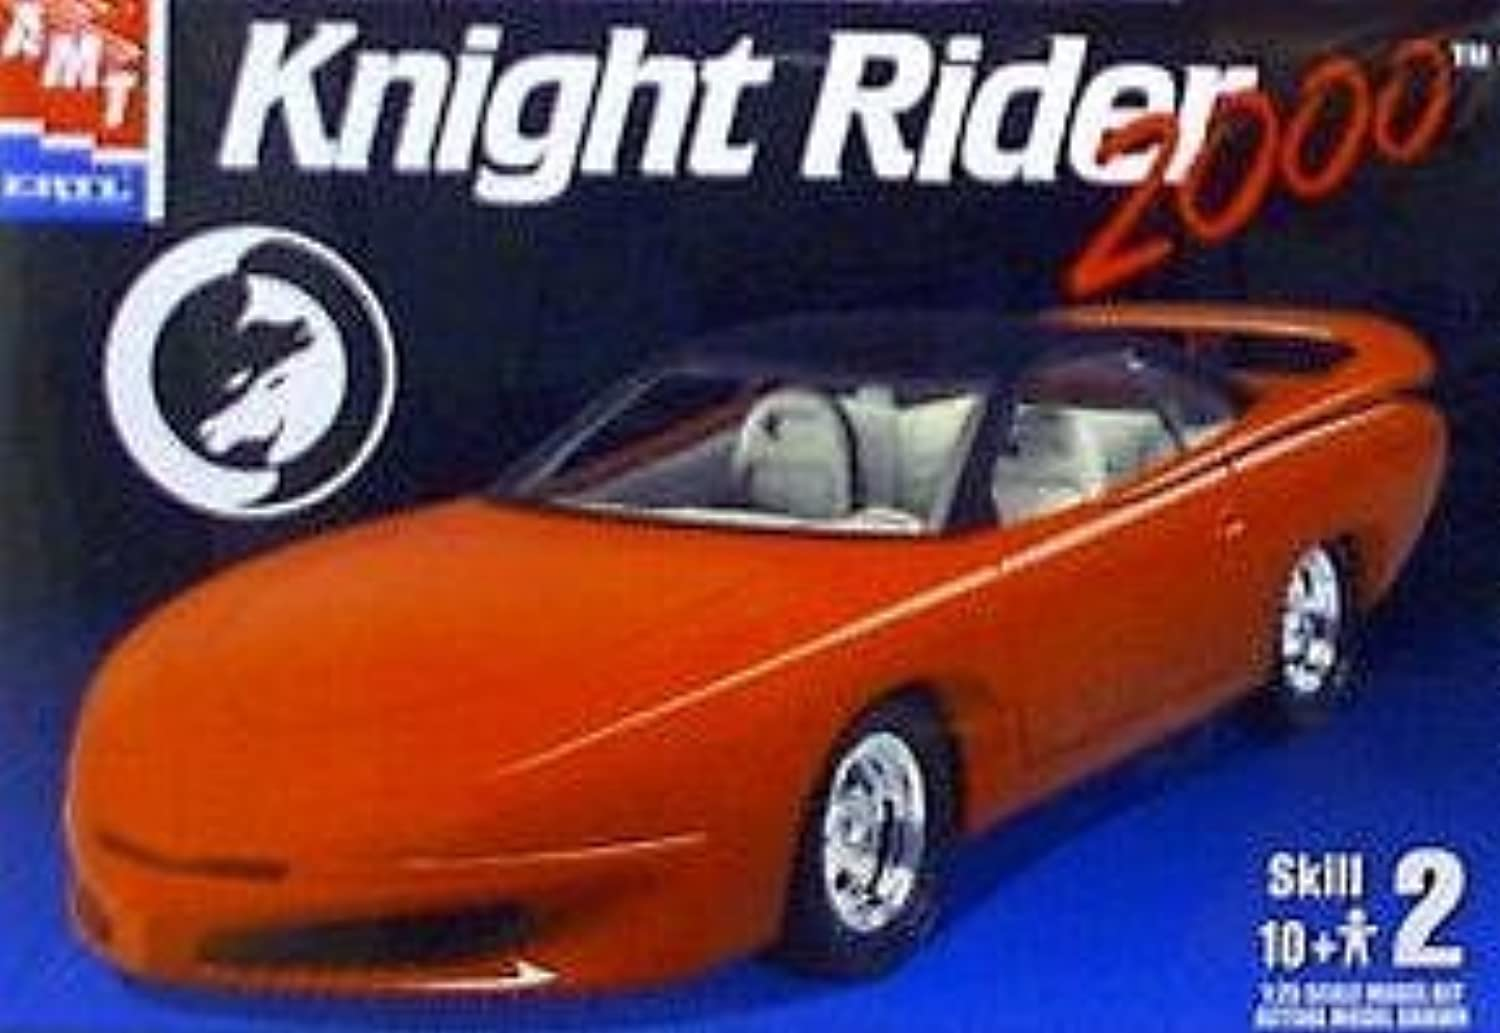 descuentos y mas AMT Knight Rider 2000 Plastic Model Model Model Kit by AMT  punto de venta